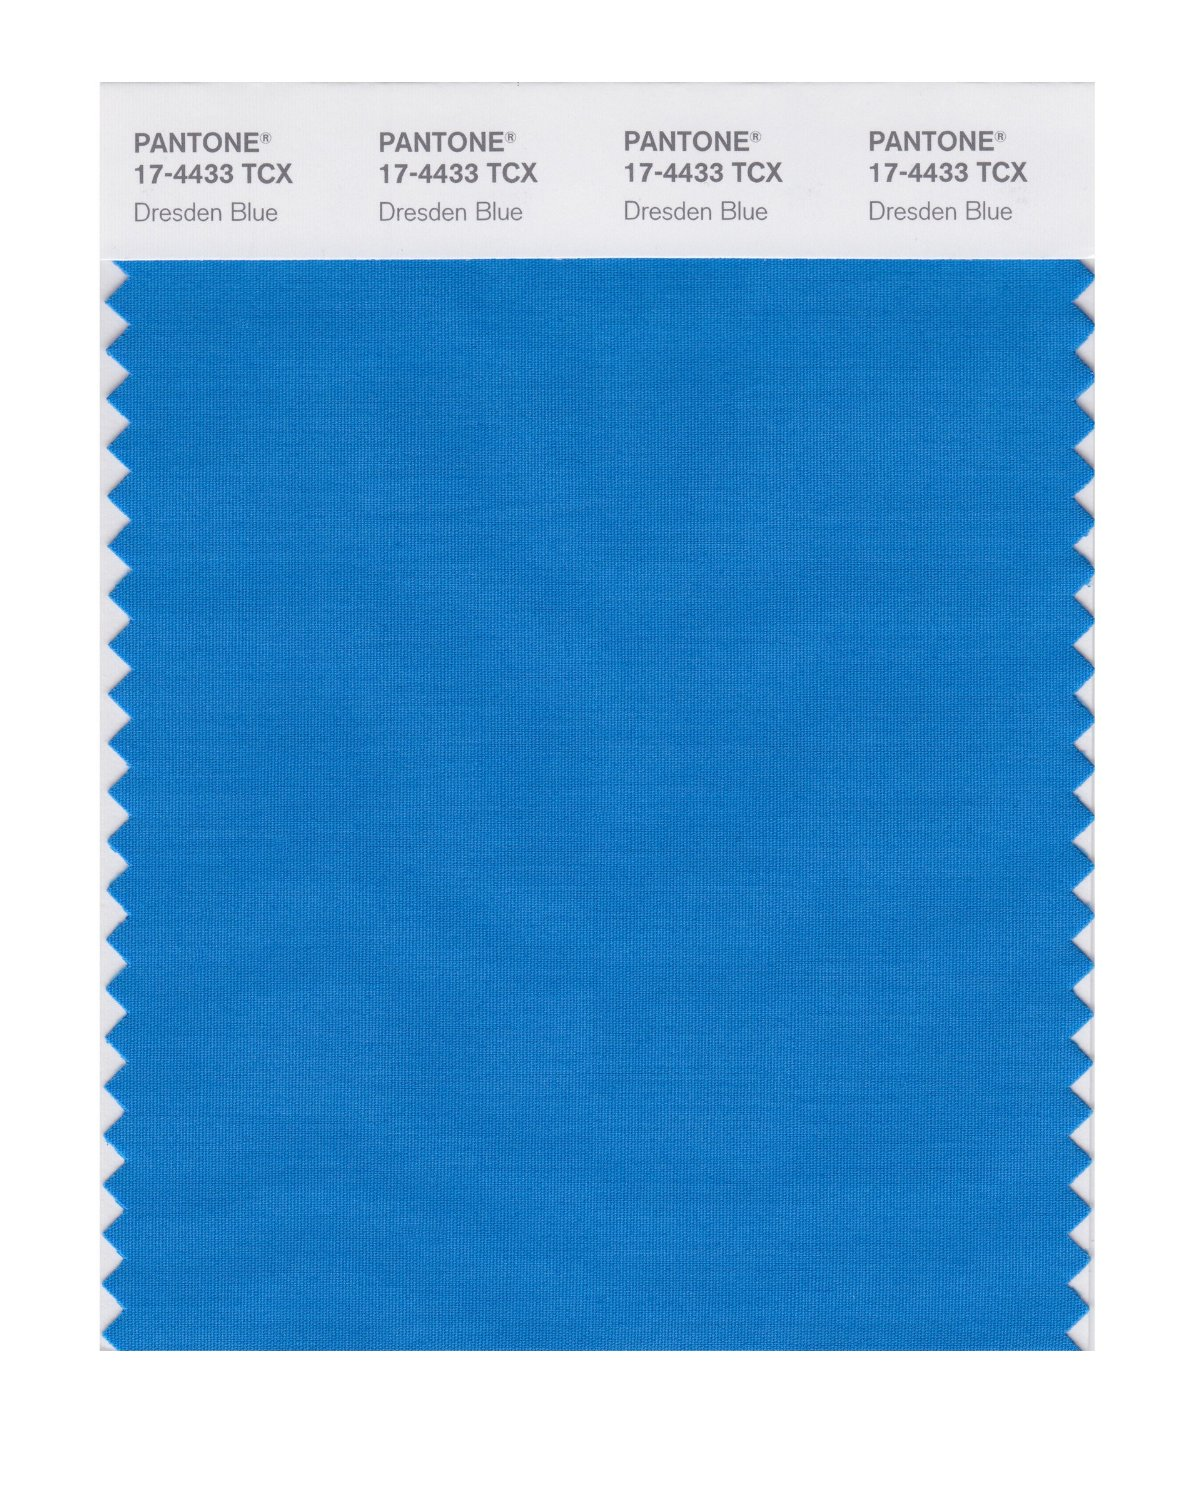 Pantone Smart Swatch 17-4433 Dresden Blue